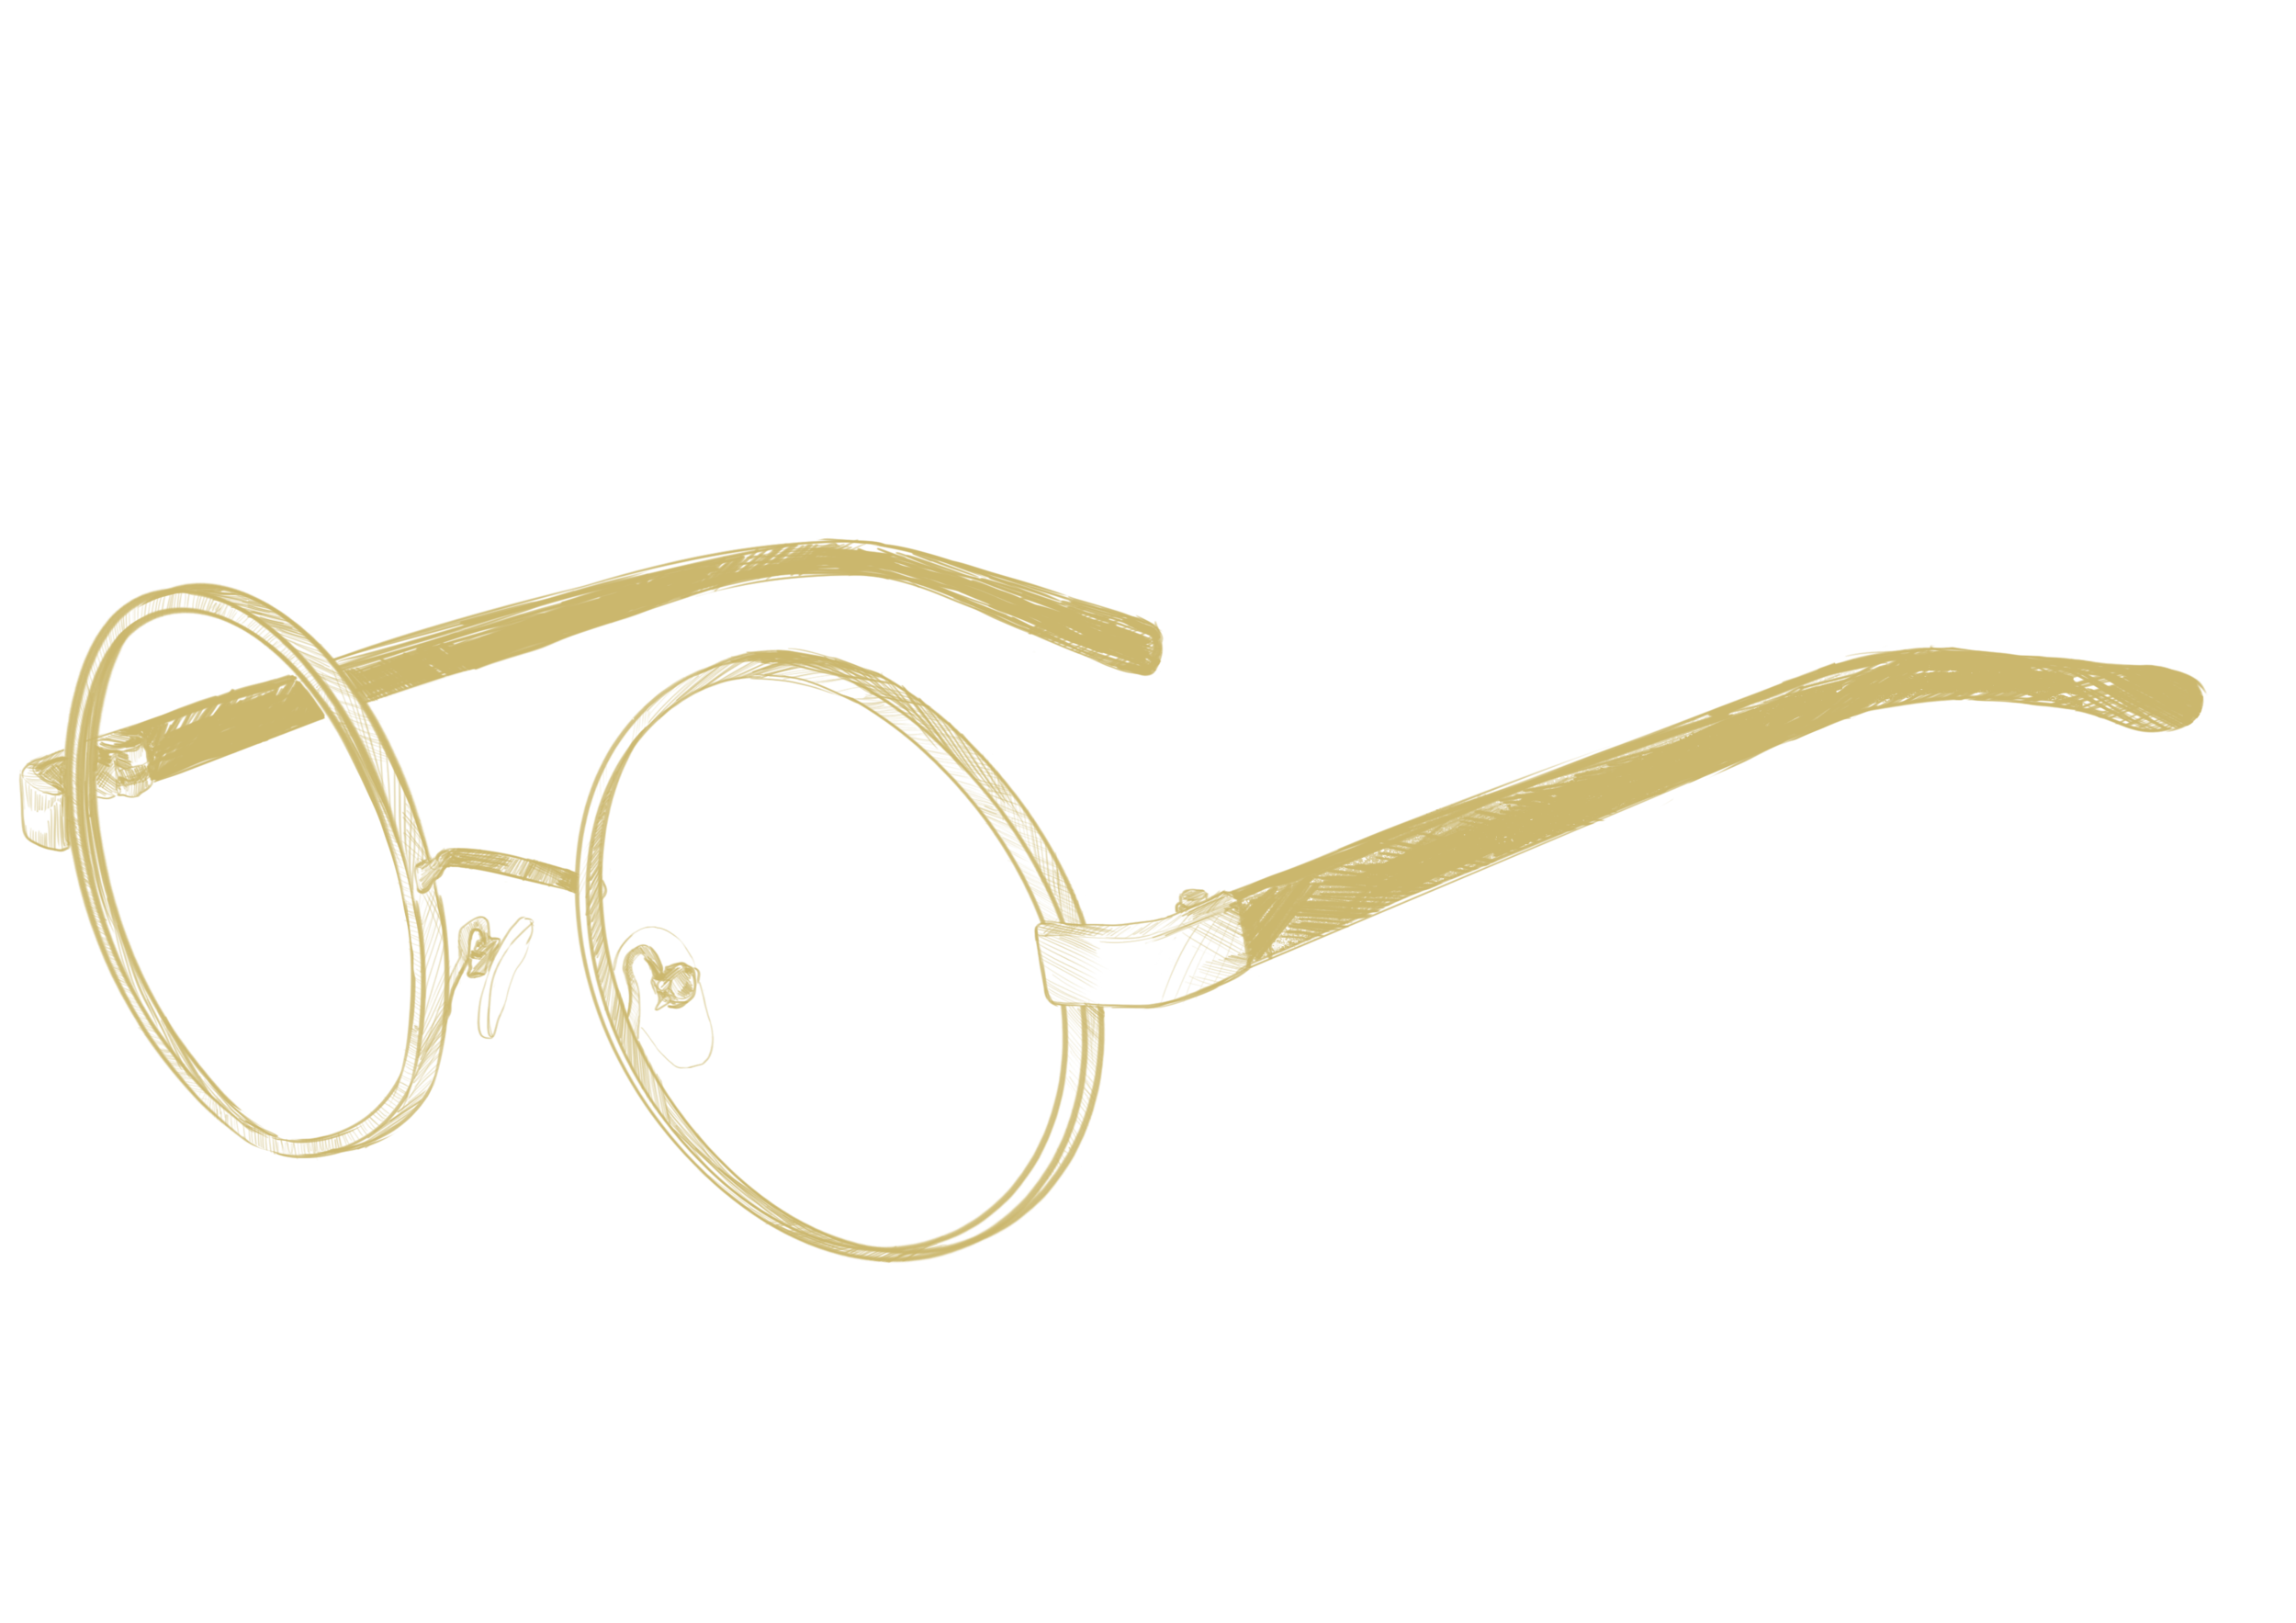 glasses_yellow-transparent.png